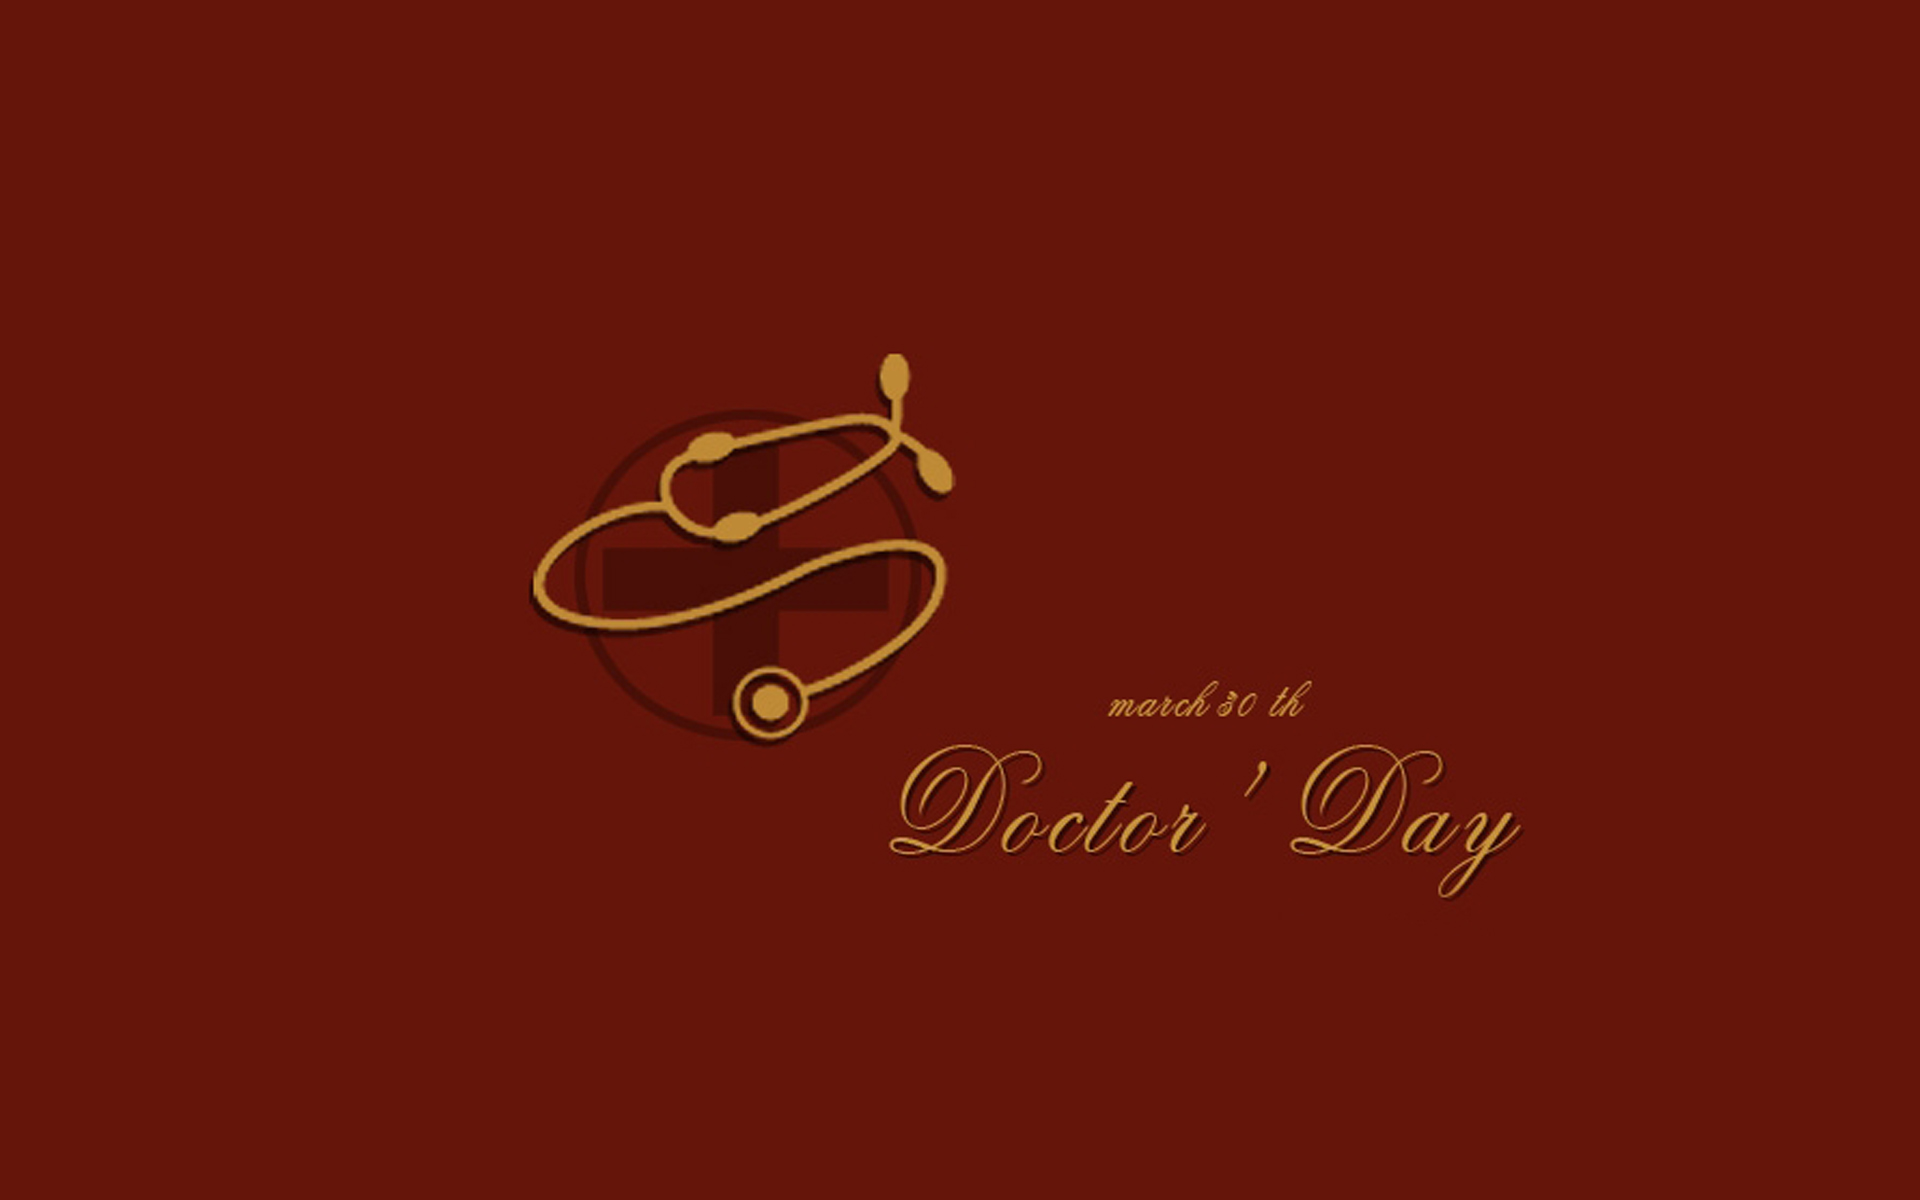 Doctors Day 2018 Wallpaper